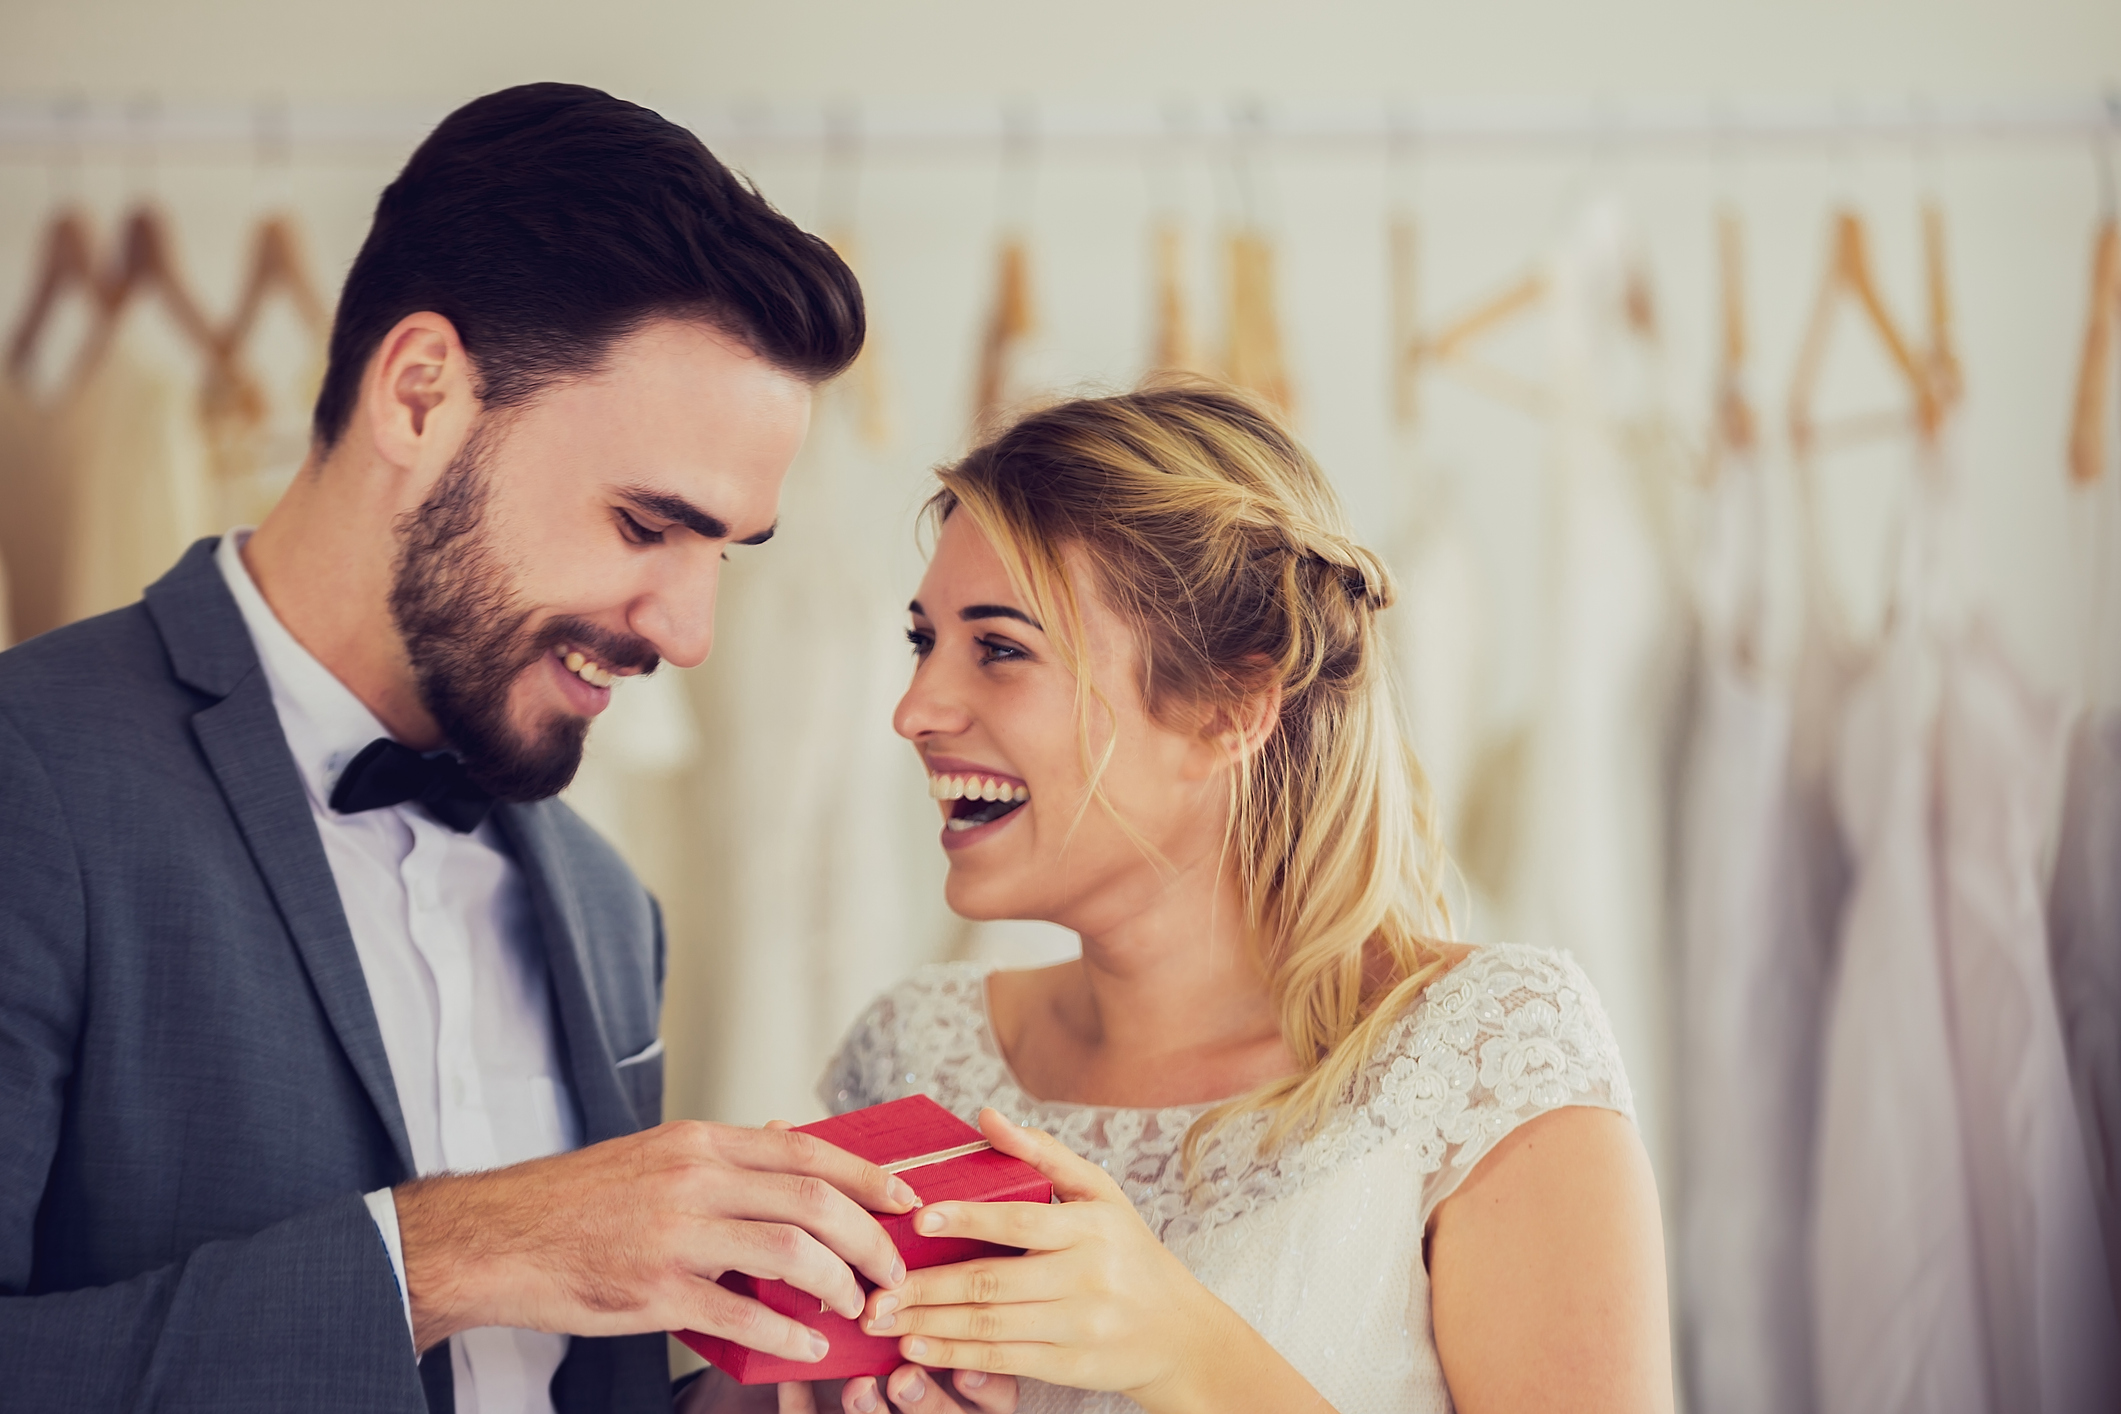 Man and woman opening engagement gifts for couples